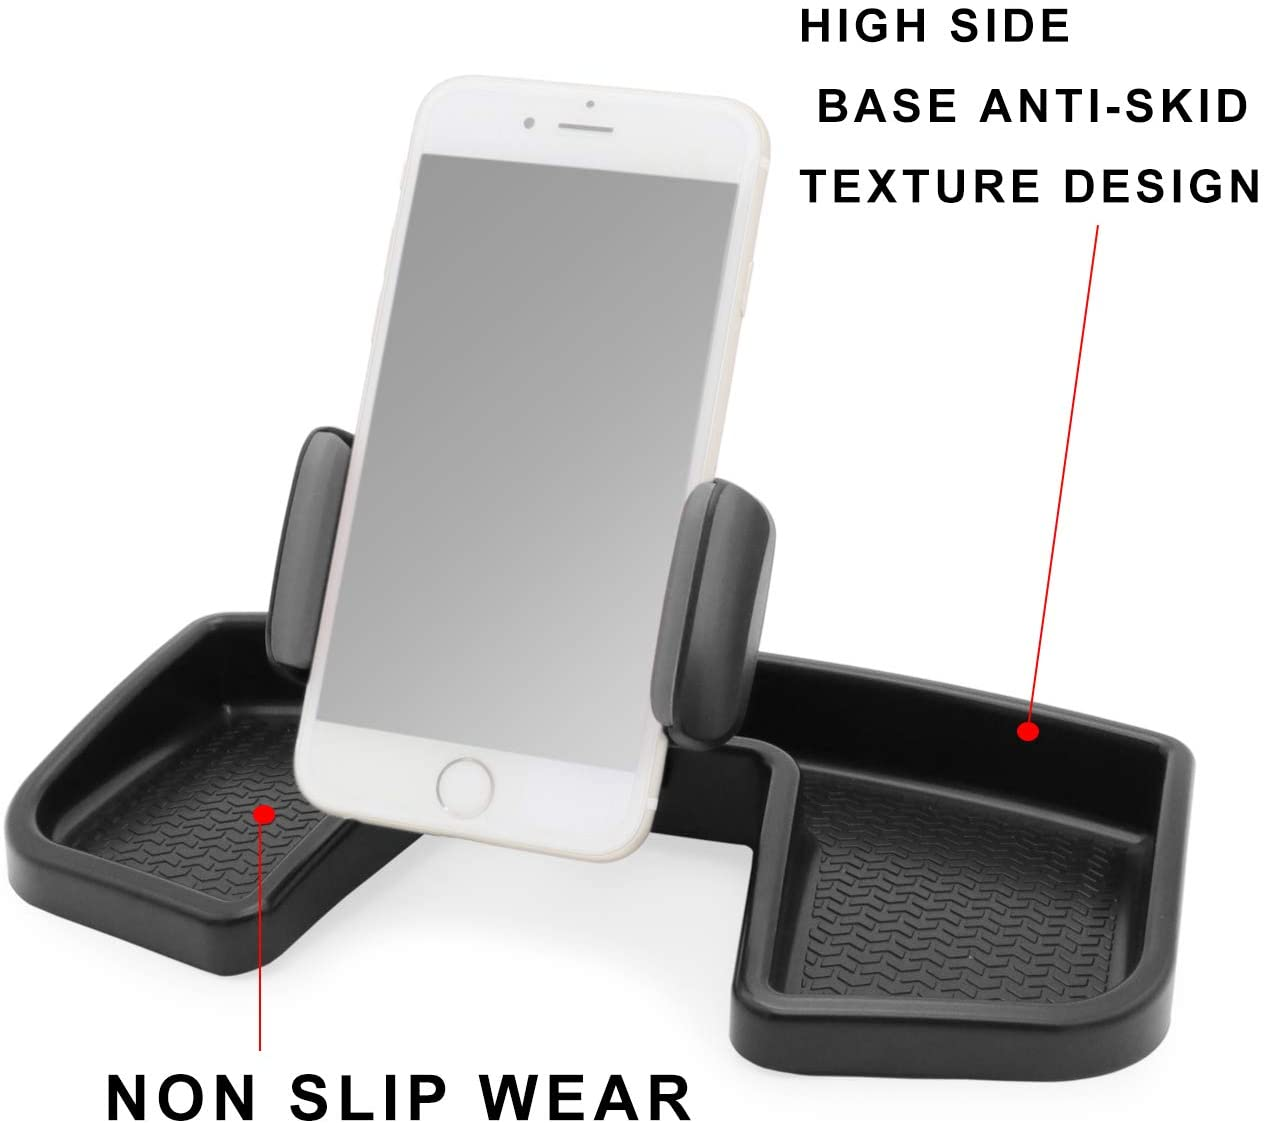 Camoo for Jeep Renegade Phone /& GPS Car Holder 360 Degree Rotation with Organizer Storage Adjustable Auto Mobile Holder Stand Kit Fits Jeep Renegade 2015-2019 Black